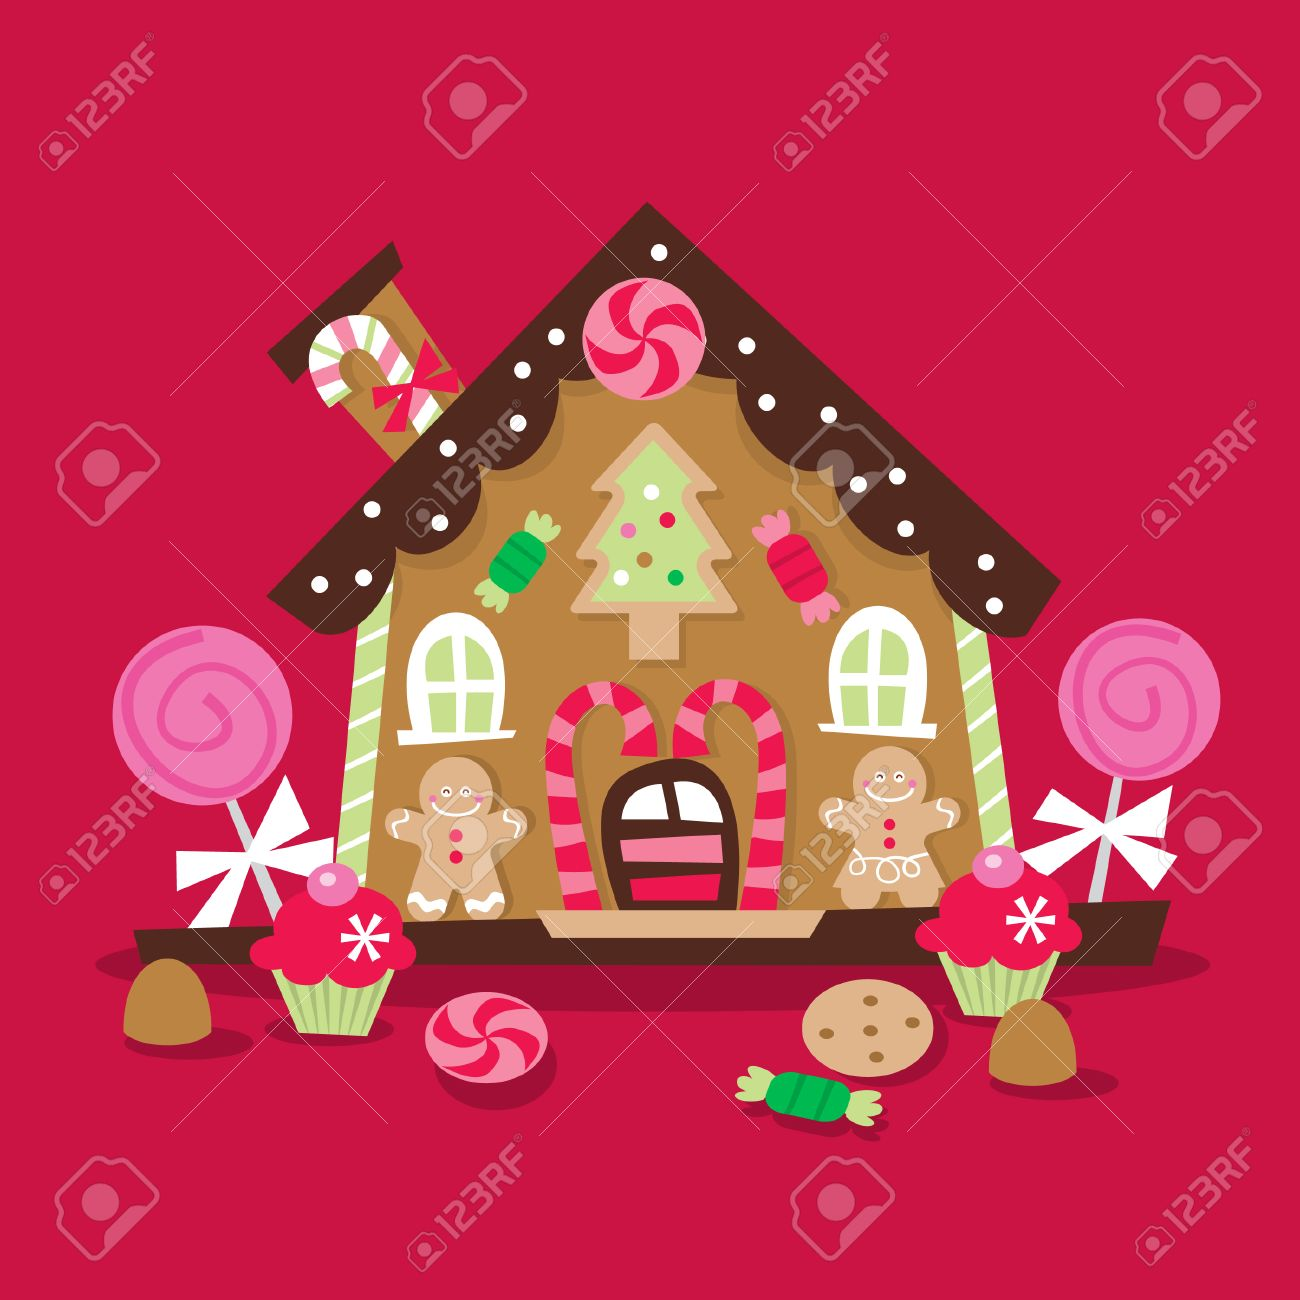 Christmas Gingerbread House Cartoon.A Cartoon Illustration Of A Whimsical And Retro Inspired Christmas